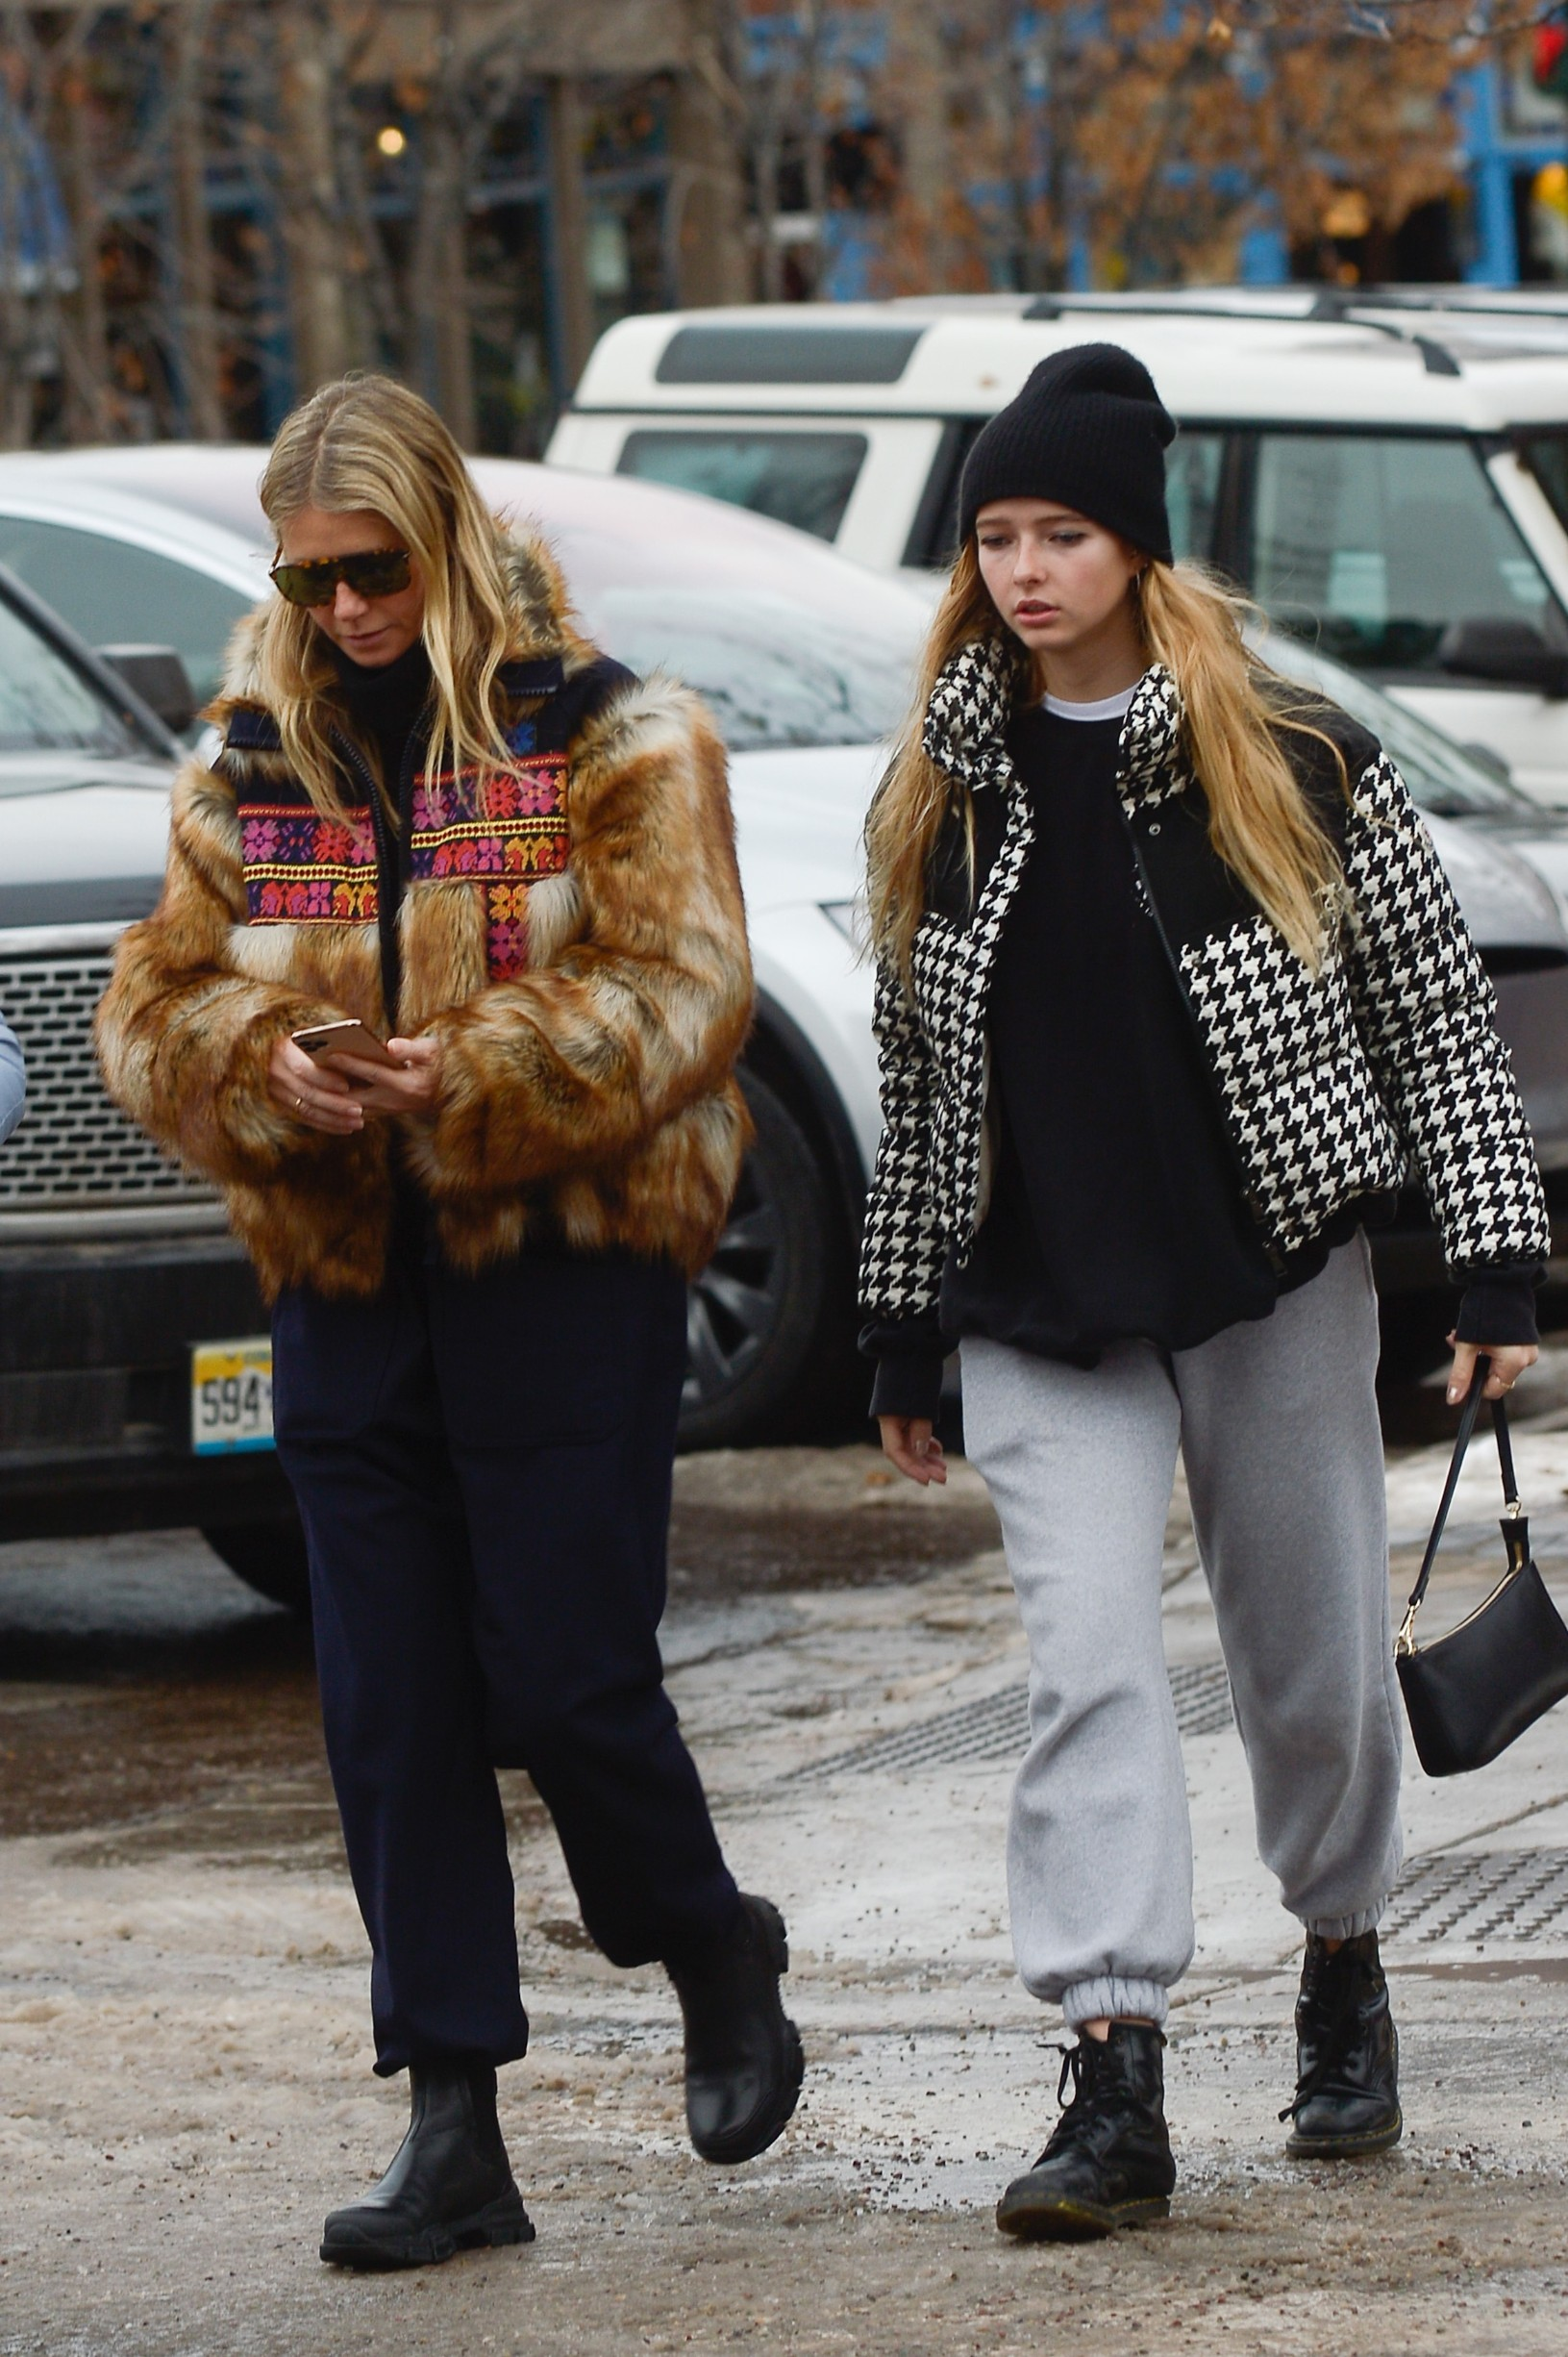 12/22/2019 Gwyneth Paltrow, Apple Martin, and Brad Falchuk head out for some shopping in Aspen, Colorado. The 47 year old actress wore a patterned fur coat, black trousers, and black boots., Image: 489468554, License: Rights-managed, Restrictions: NO usage without agreed price and terms. Please contact sales@theimagedirect.com, Model Release: no, Credit line: TheImageDirect.com / The Image Direct / Profimedia